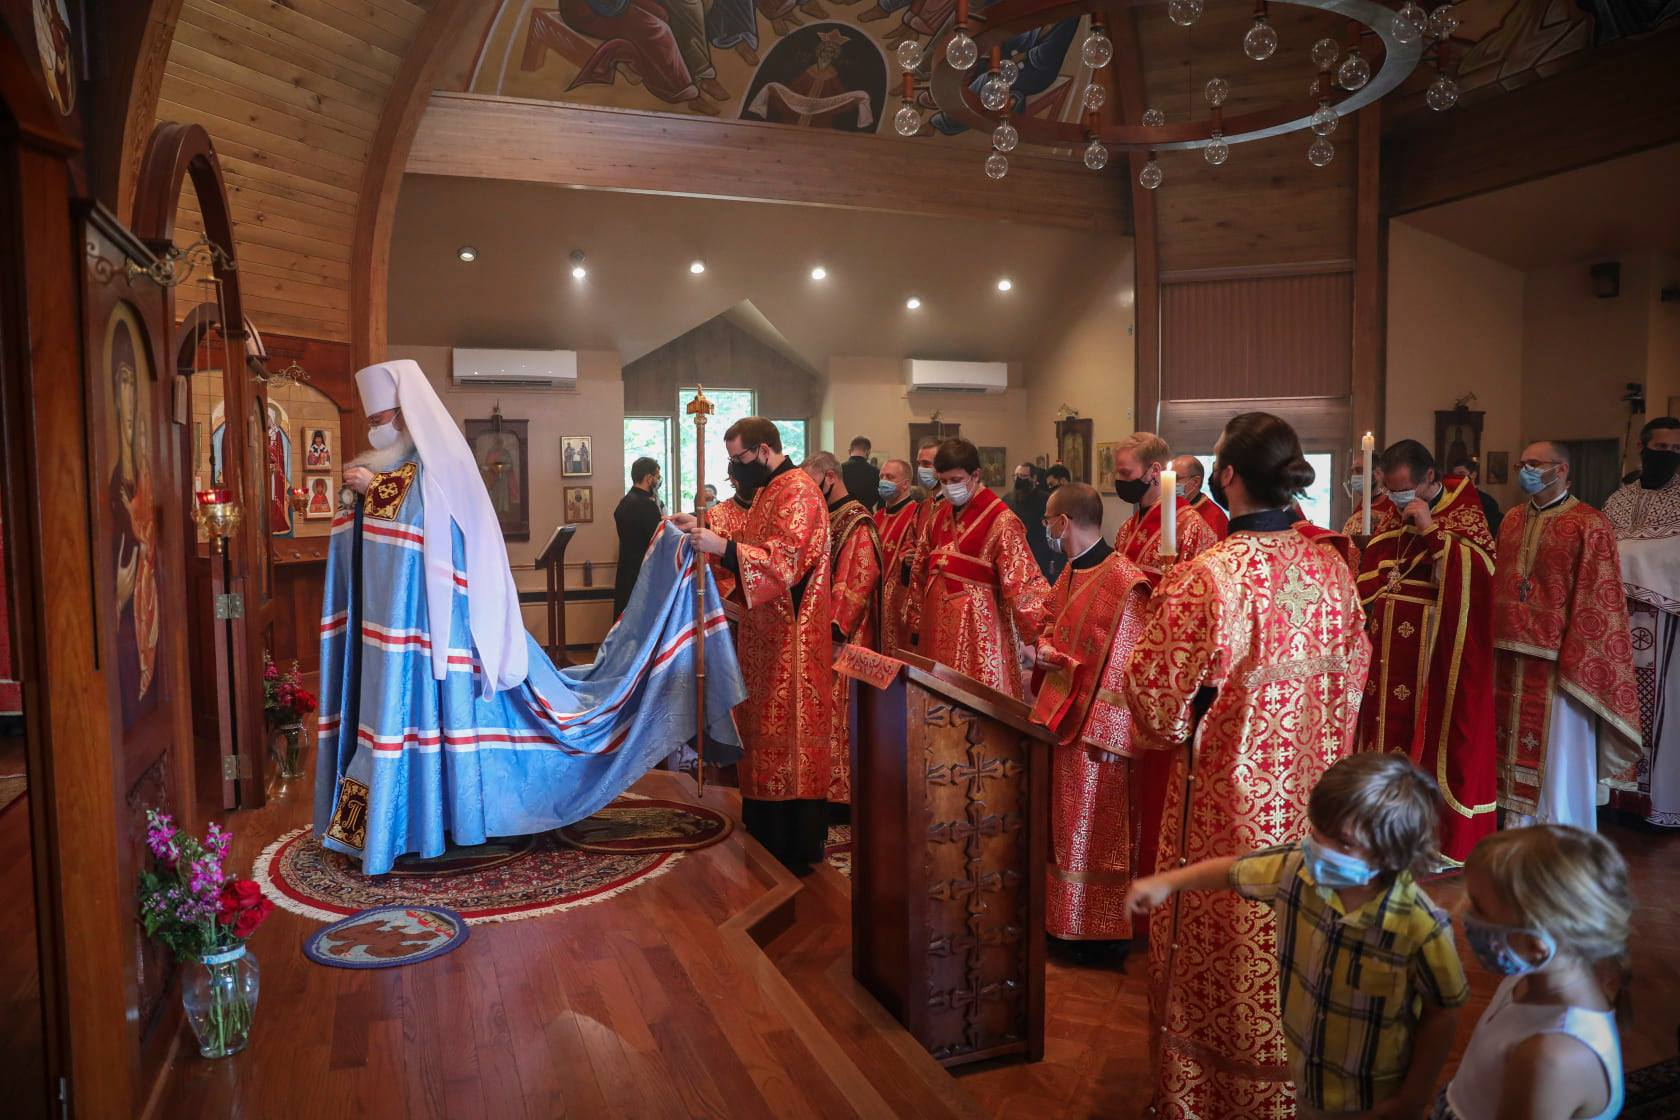 Scenes from Divine Liturgy and ordination of Dn. Vitaly